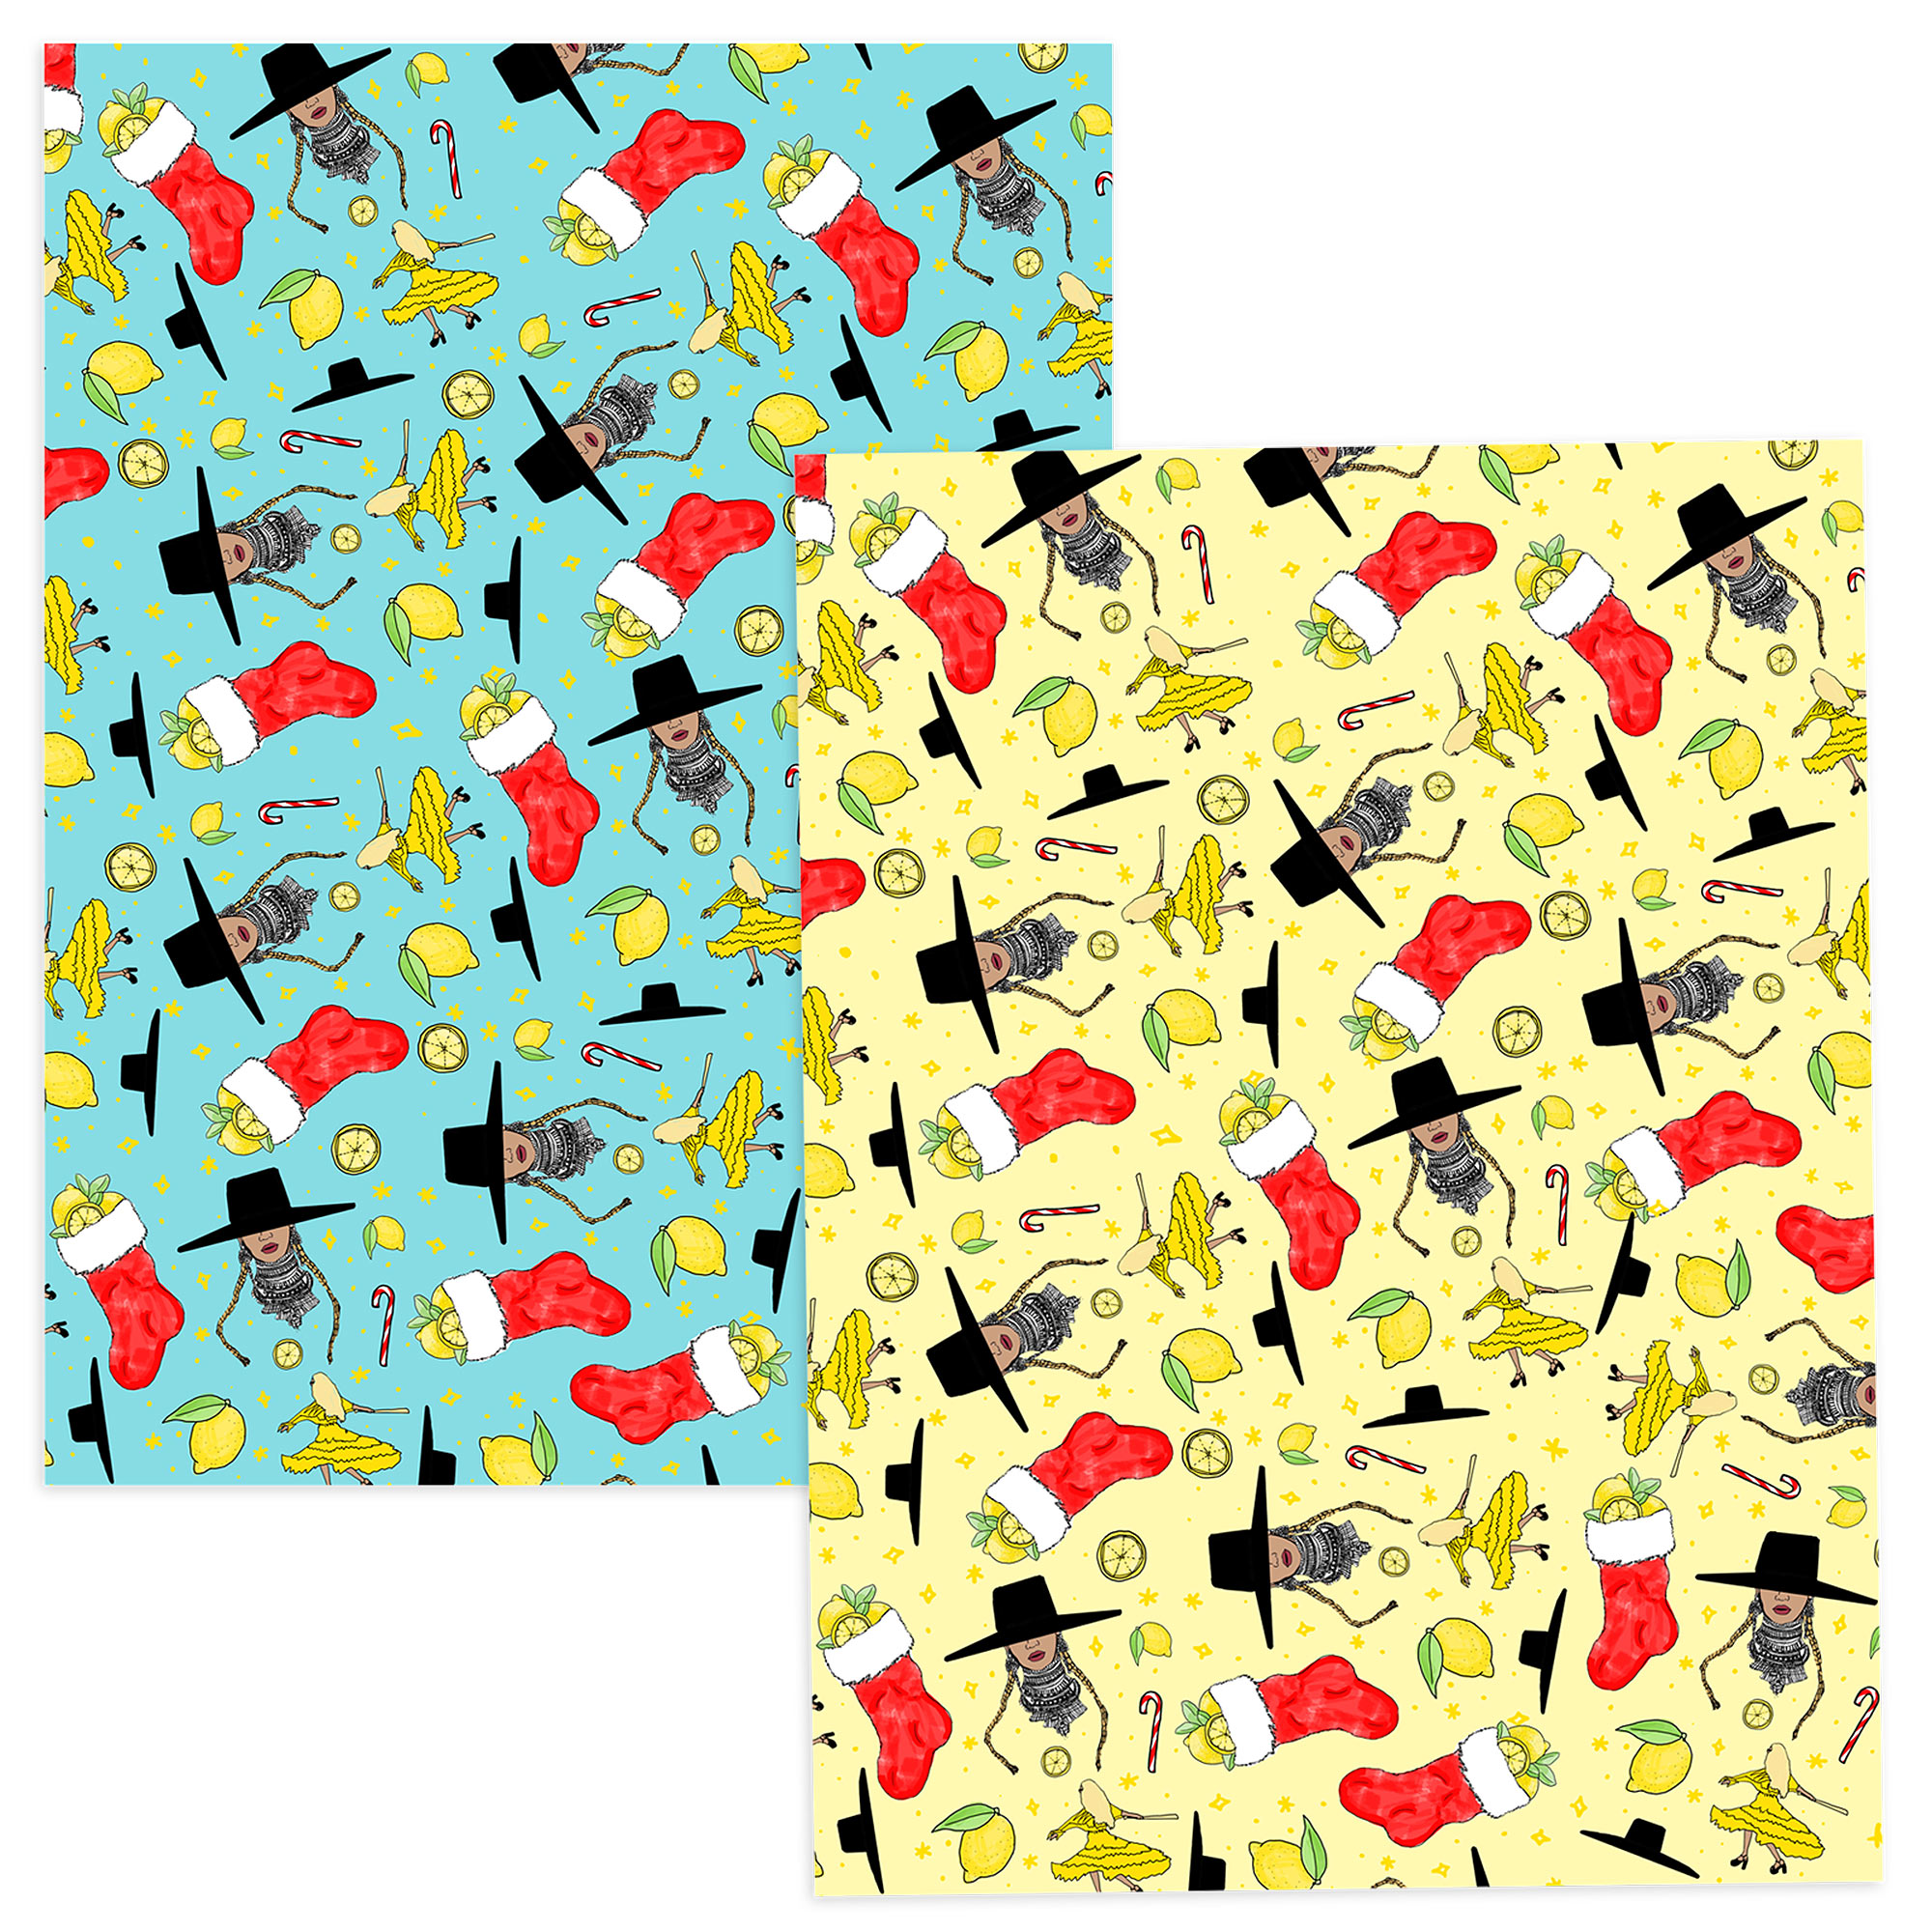 Beyonce christmas stuff - http://shop.beyonce.com/products/59289-blue-yellow-holiday-pattern-wrapping-paper